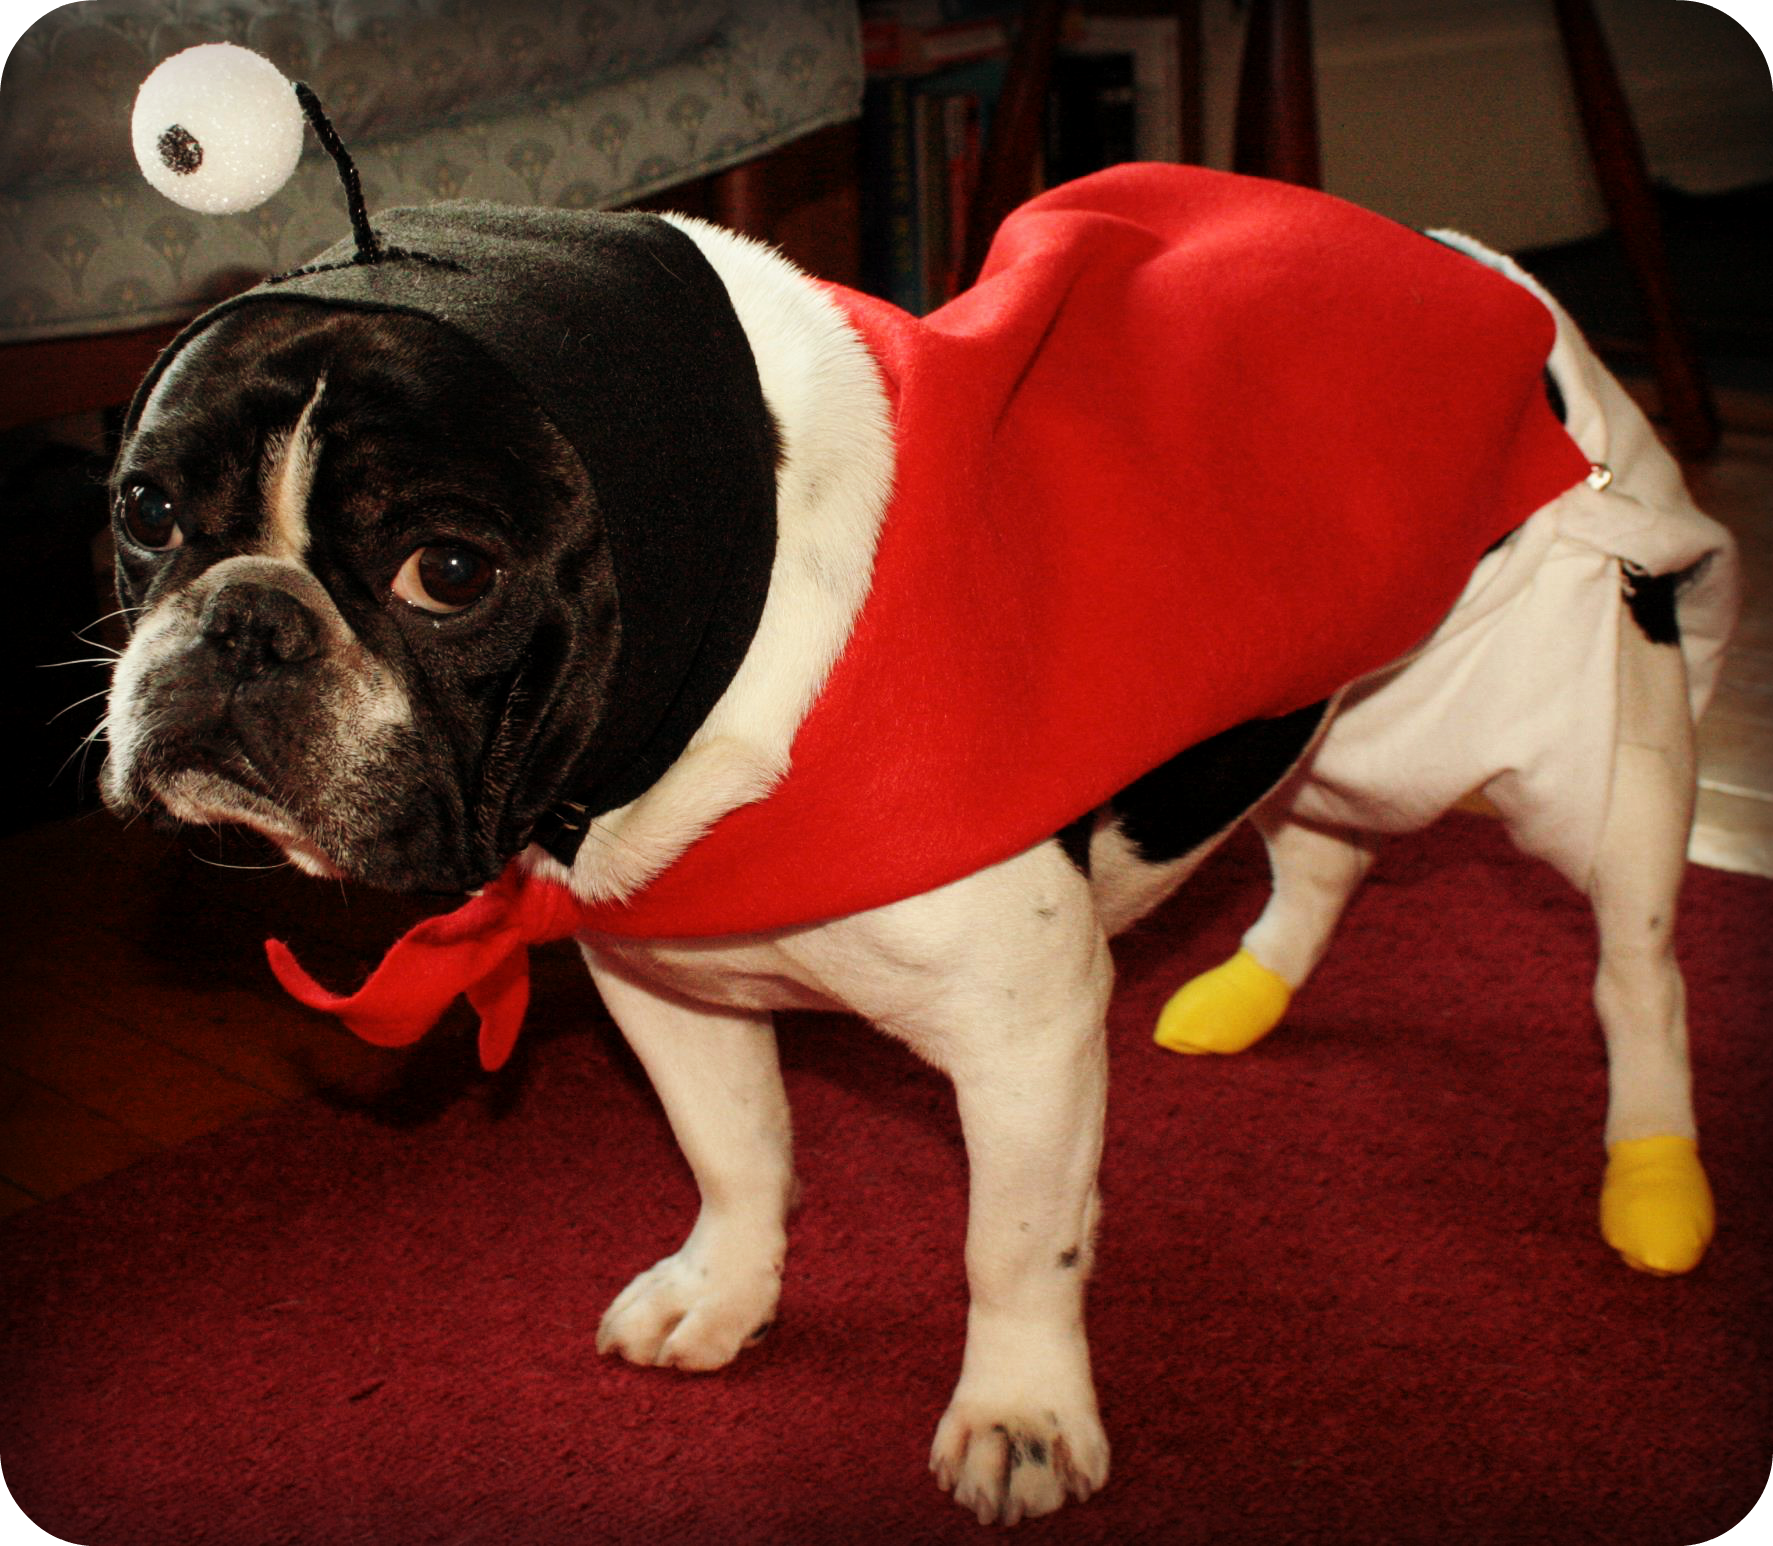 chicago-otis-in-nibbler-futurama-dog-halloween-costume